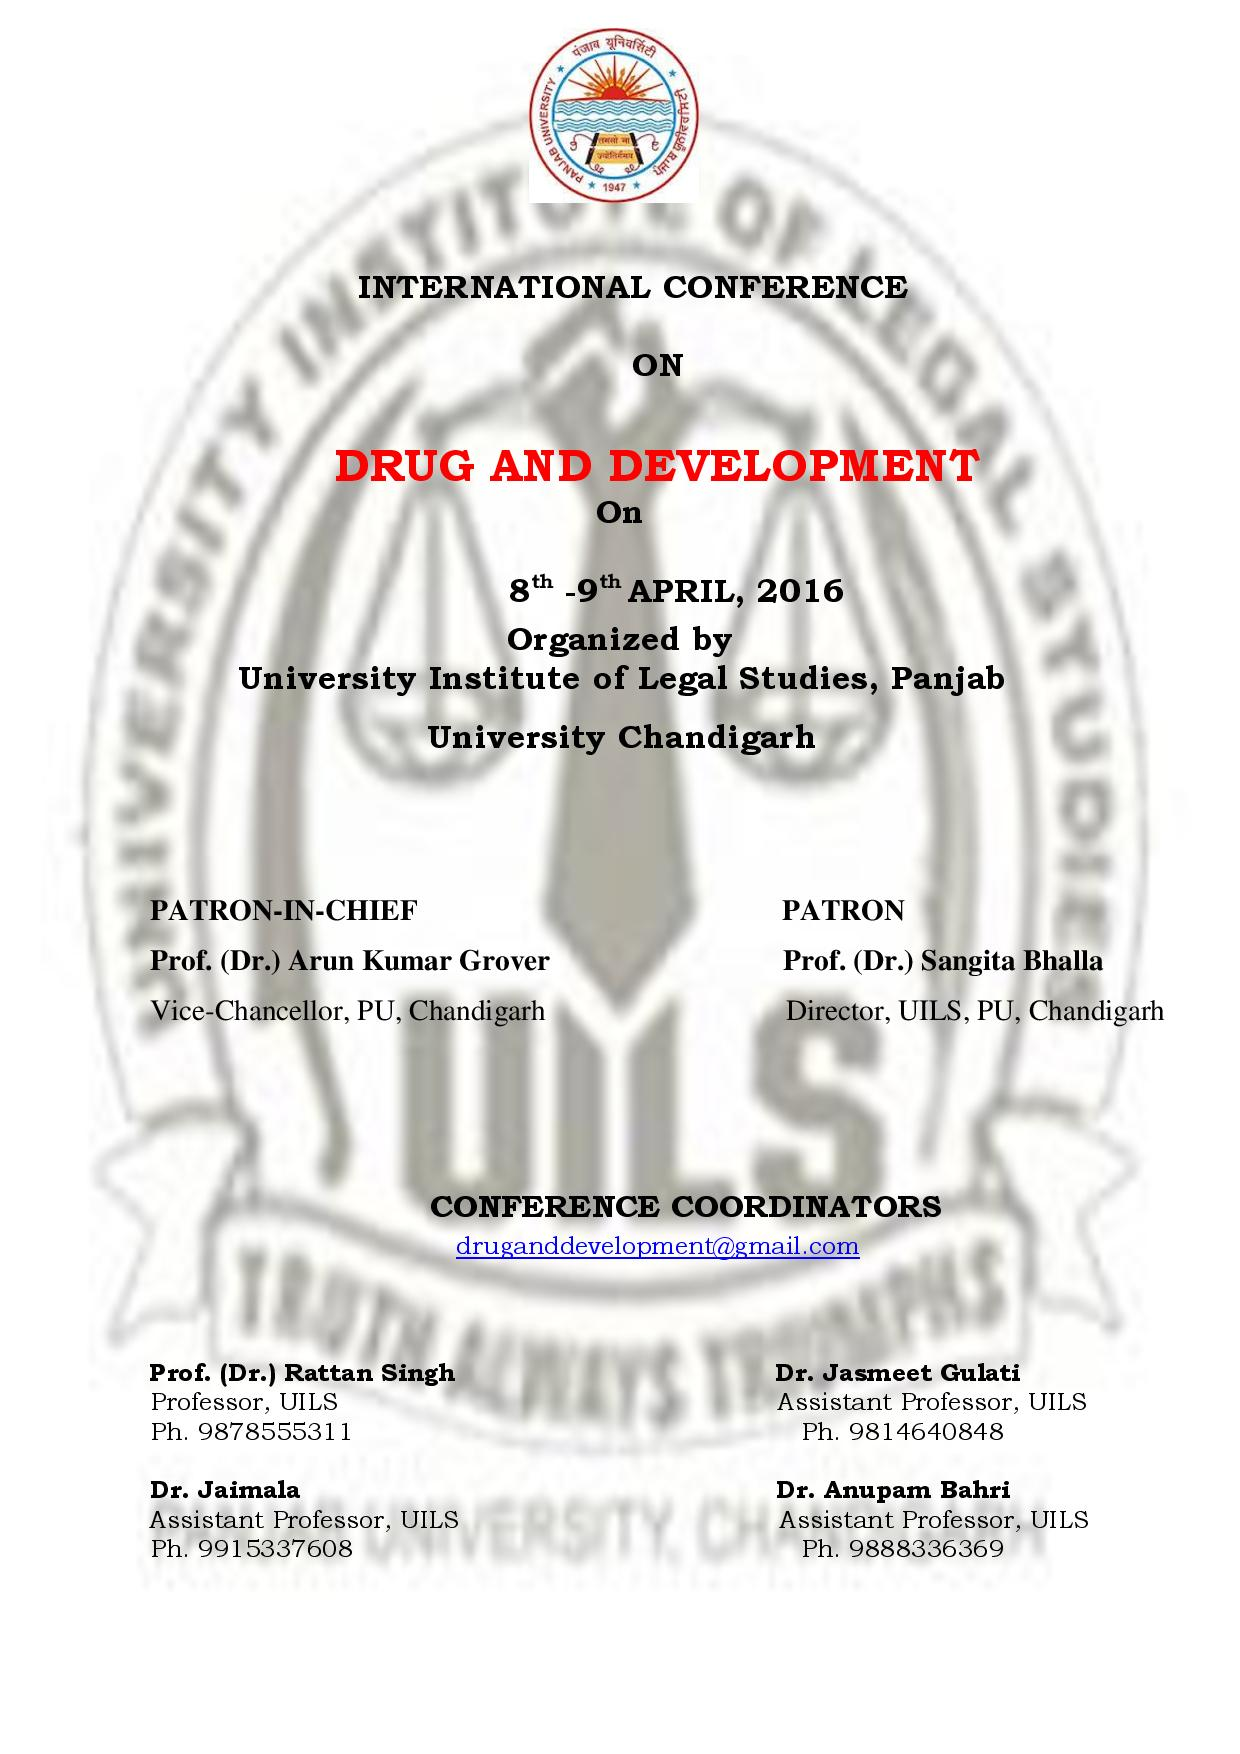 Call for Papers: UILS, Panjab University's International Conference on Drug and Development